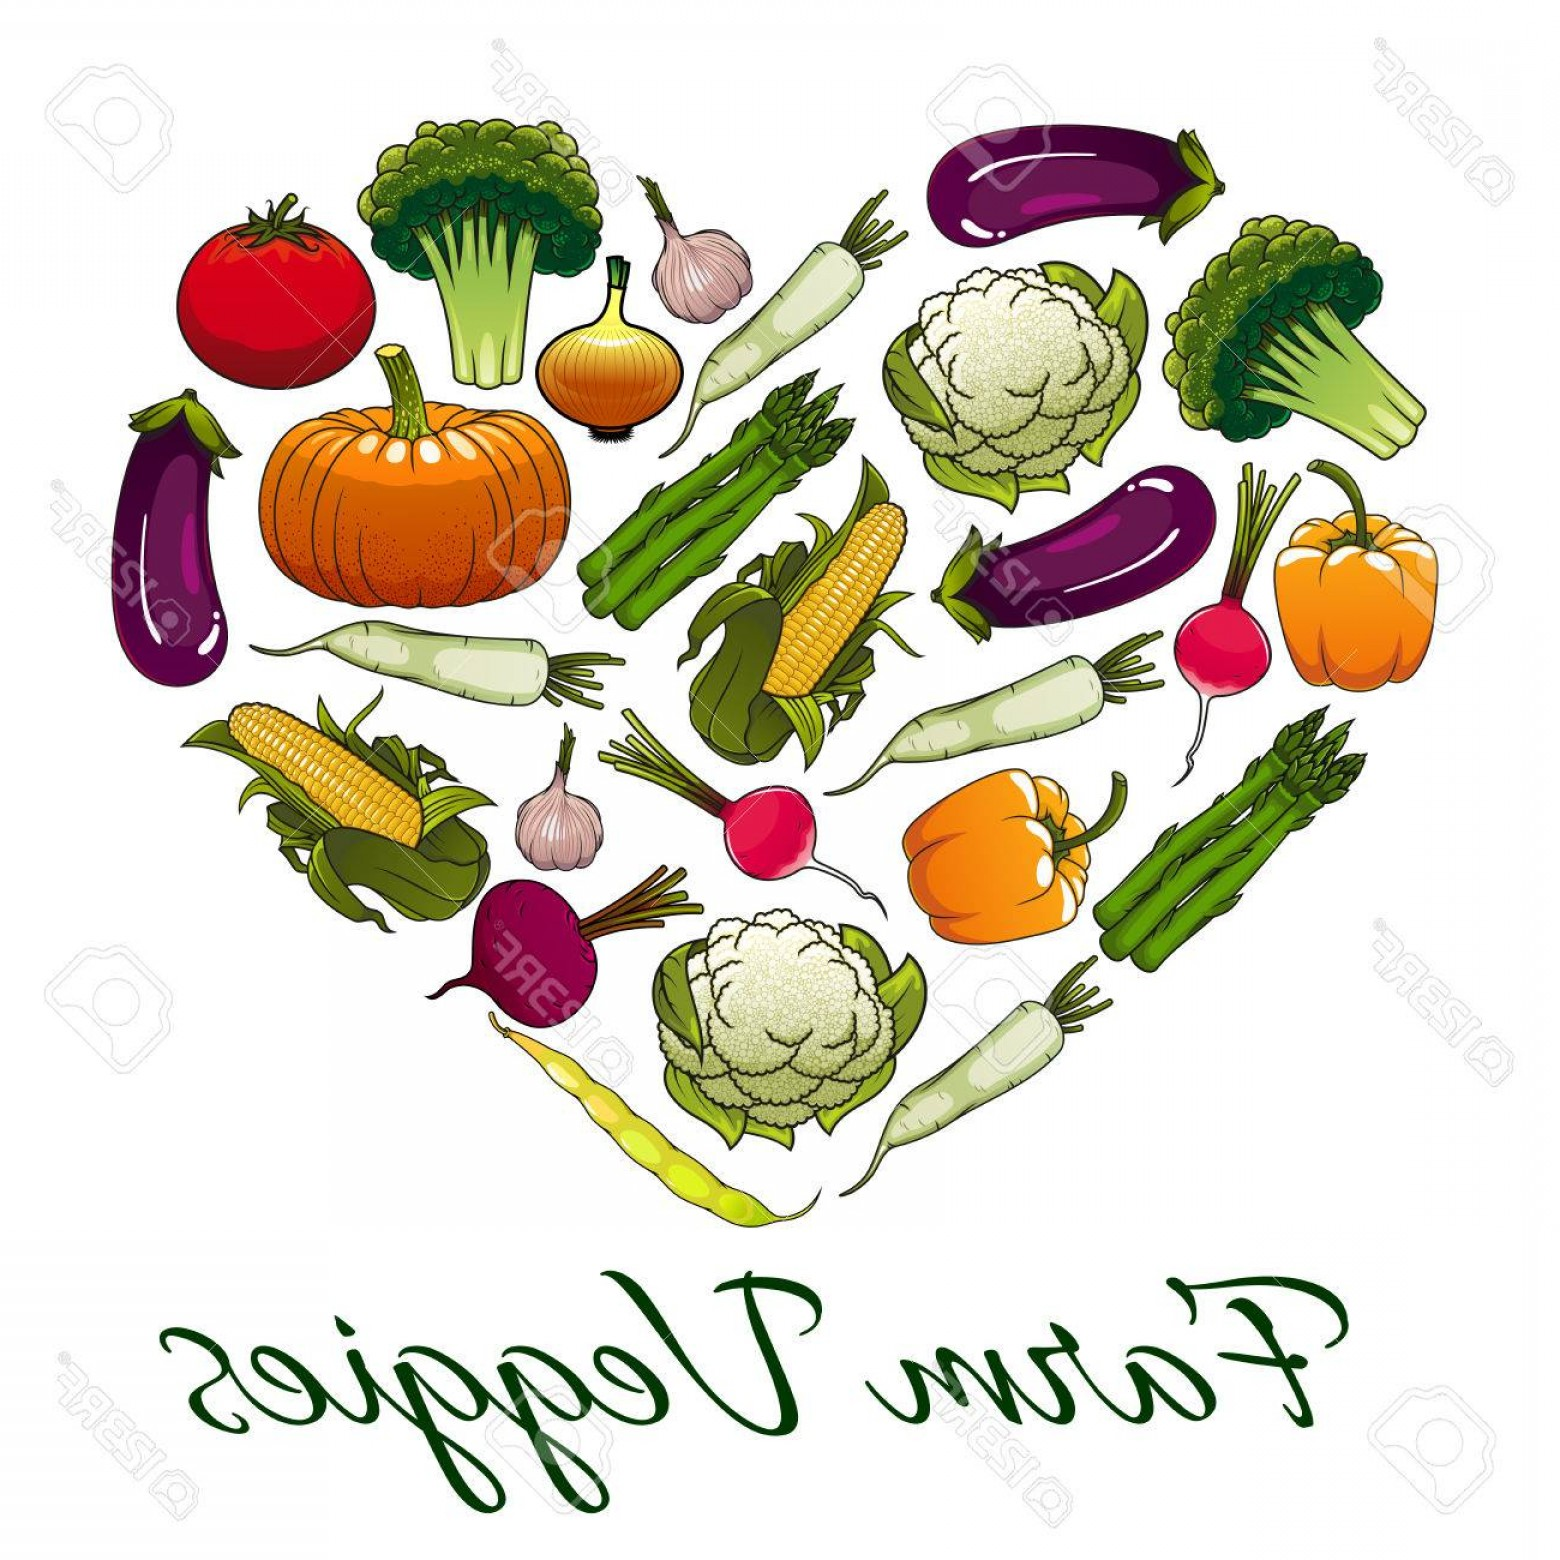 Vegan Heart Vectors: Photostock Vector Farm Veggies Emblem In Shape Of Heart Vector Emblem Of Fresh Vegetables Vegetarian Icon With Pumpkin